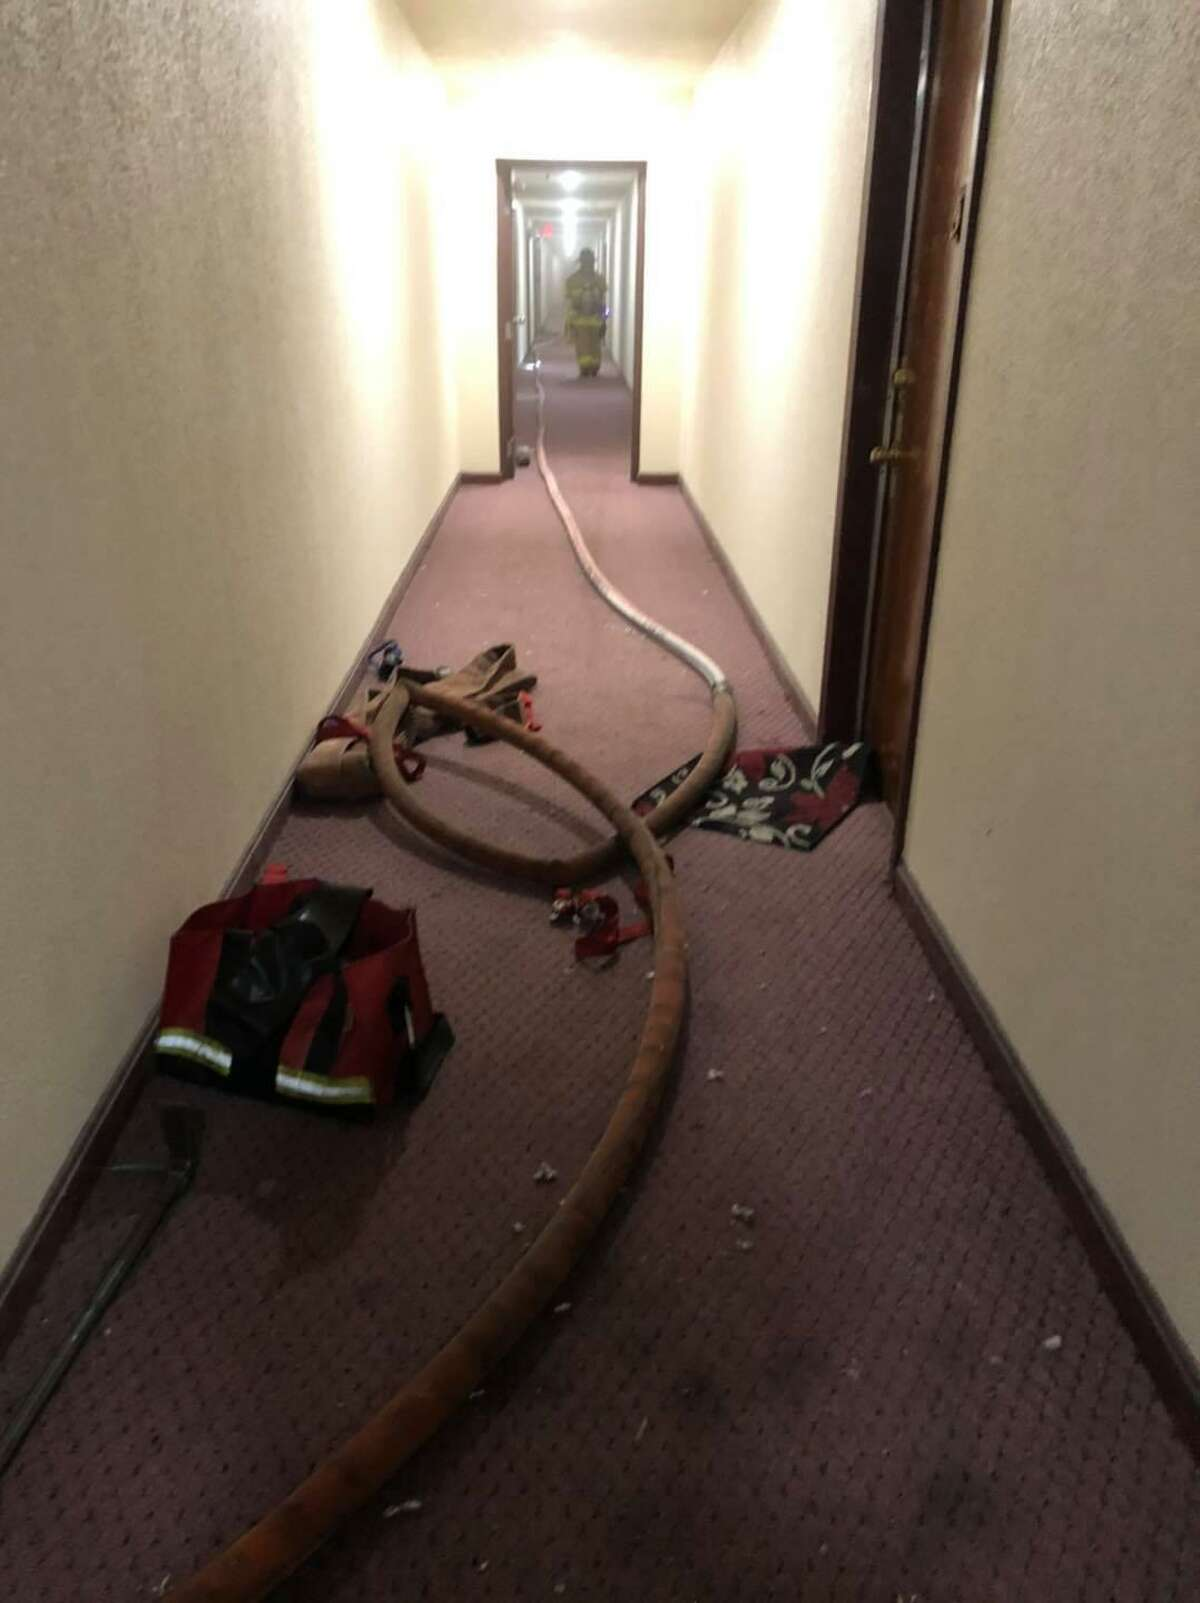 A fire in a Burnside Avenue apartment building was contained to one unit because of a closed door, according to fire officials.